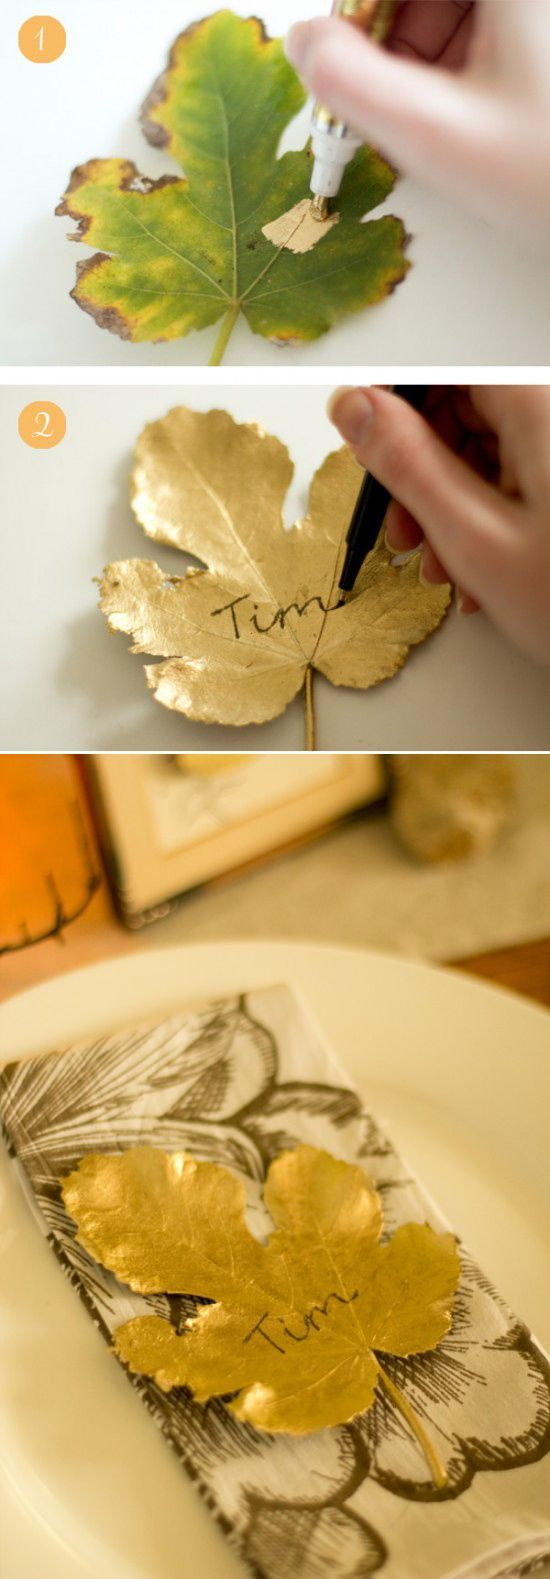 DIY gilded leaf place cards . You can use Martha Stewarts Gold paint in the tub too.  I did these big leaves from a London Plane sycamore tree last year an they are still good.  I used them for the top plate since I did not have anything gold, then put the napkin and small gold painted leaf with the napkin ring.: